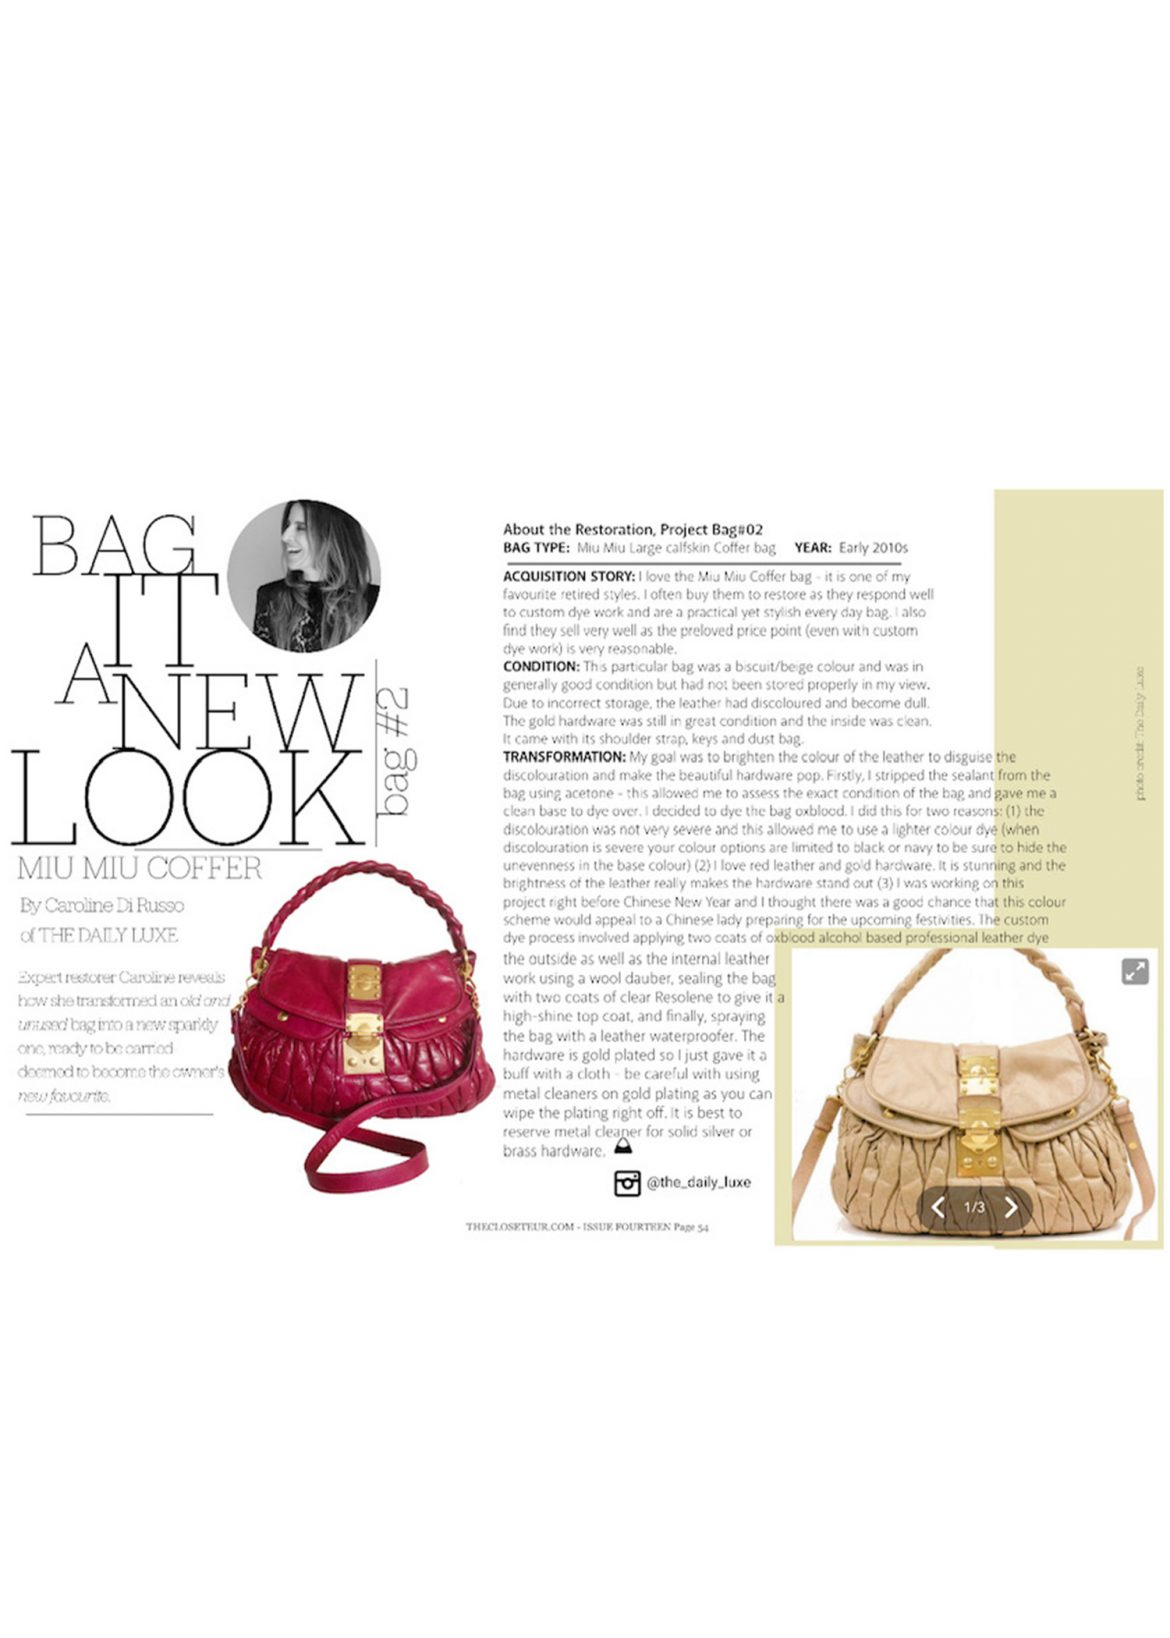 The Daily Luxe in the Media